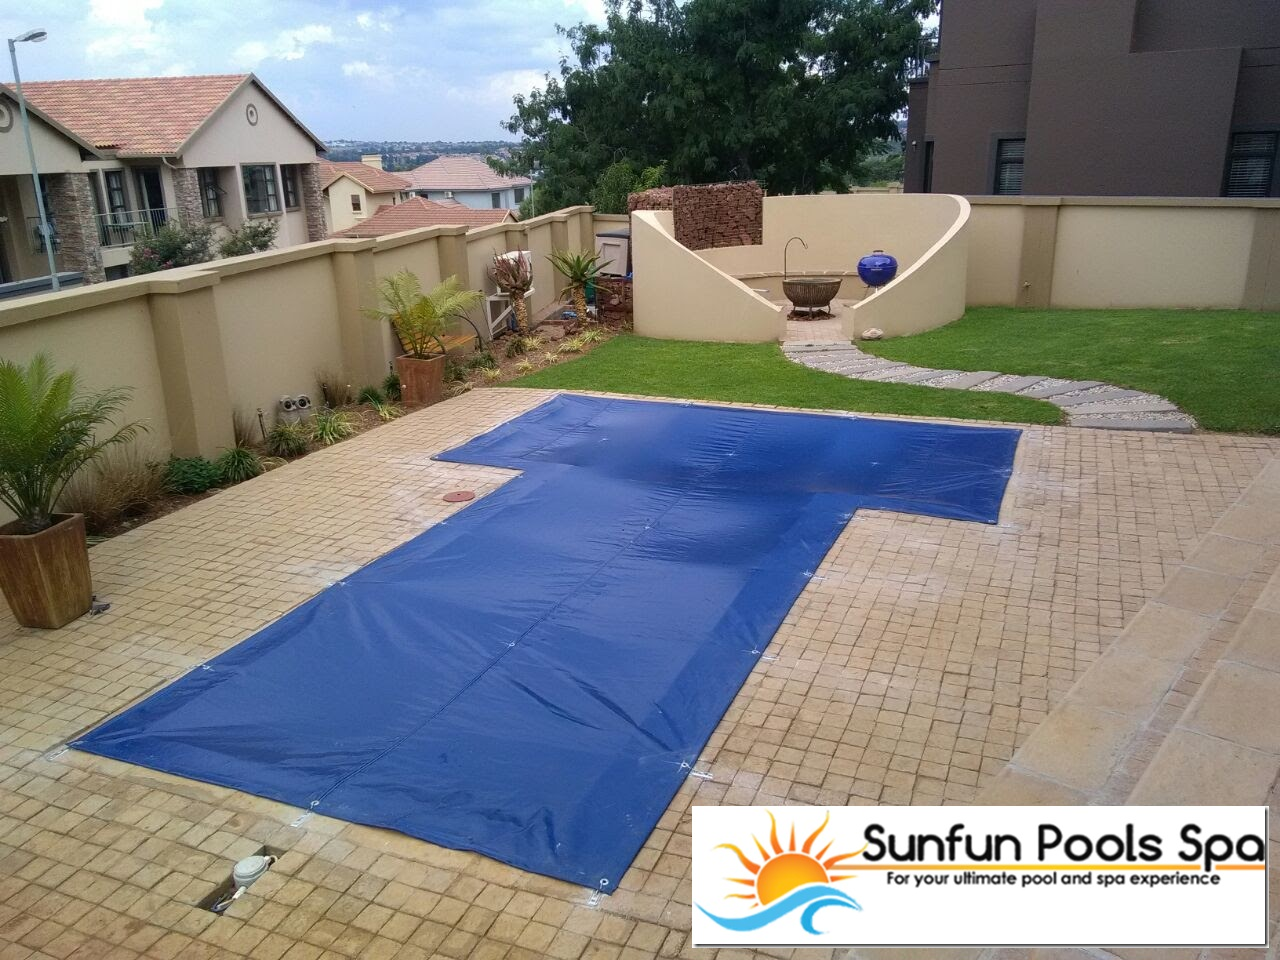 Quality pvc pool covers junk mail - Intex swimming pool accessories south africa ...